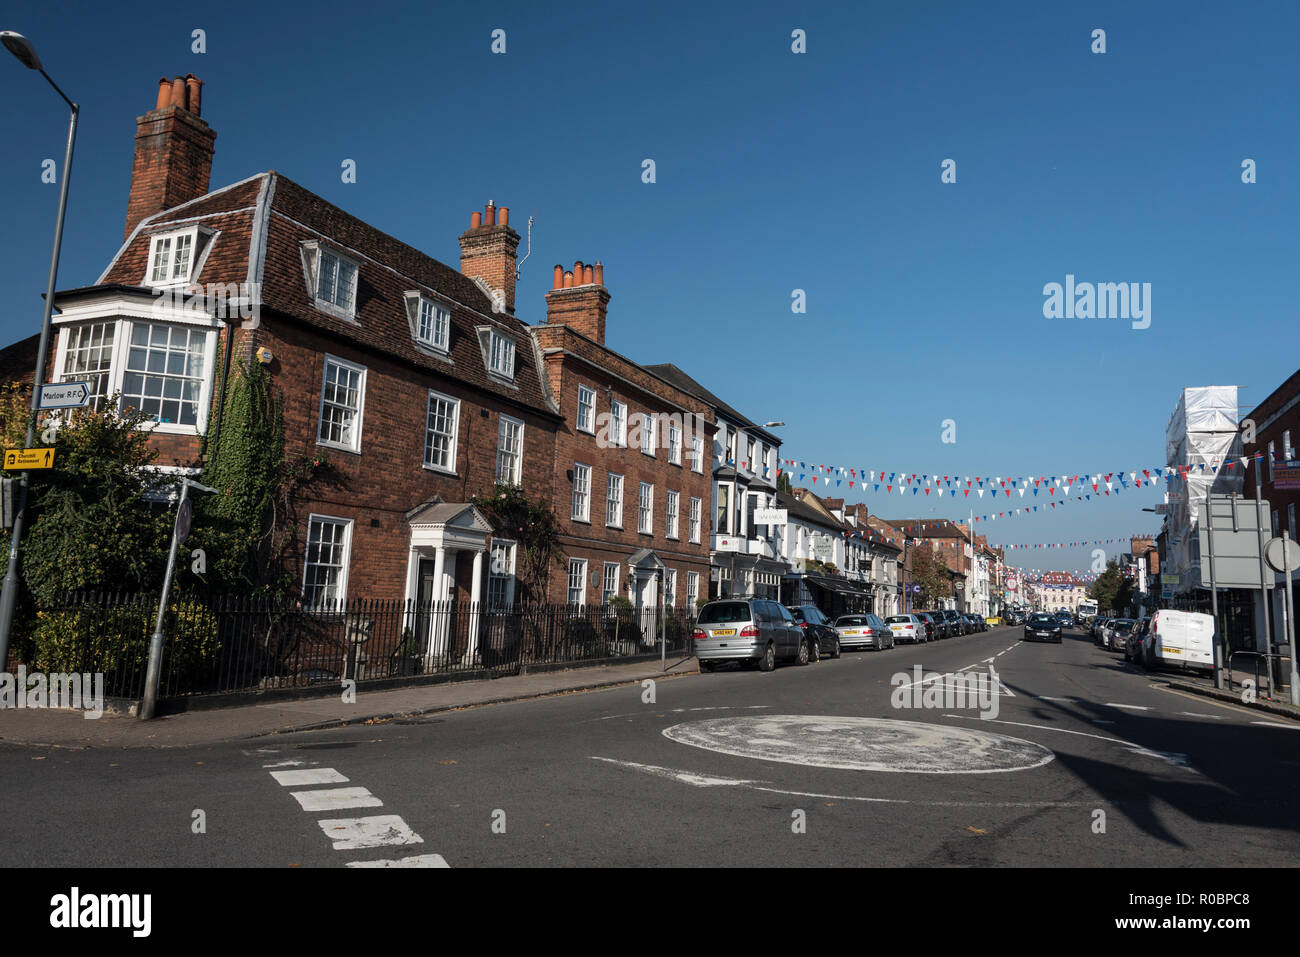 High street at Marlow in Buckinghamshire, Britain Stock Photo